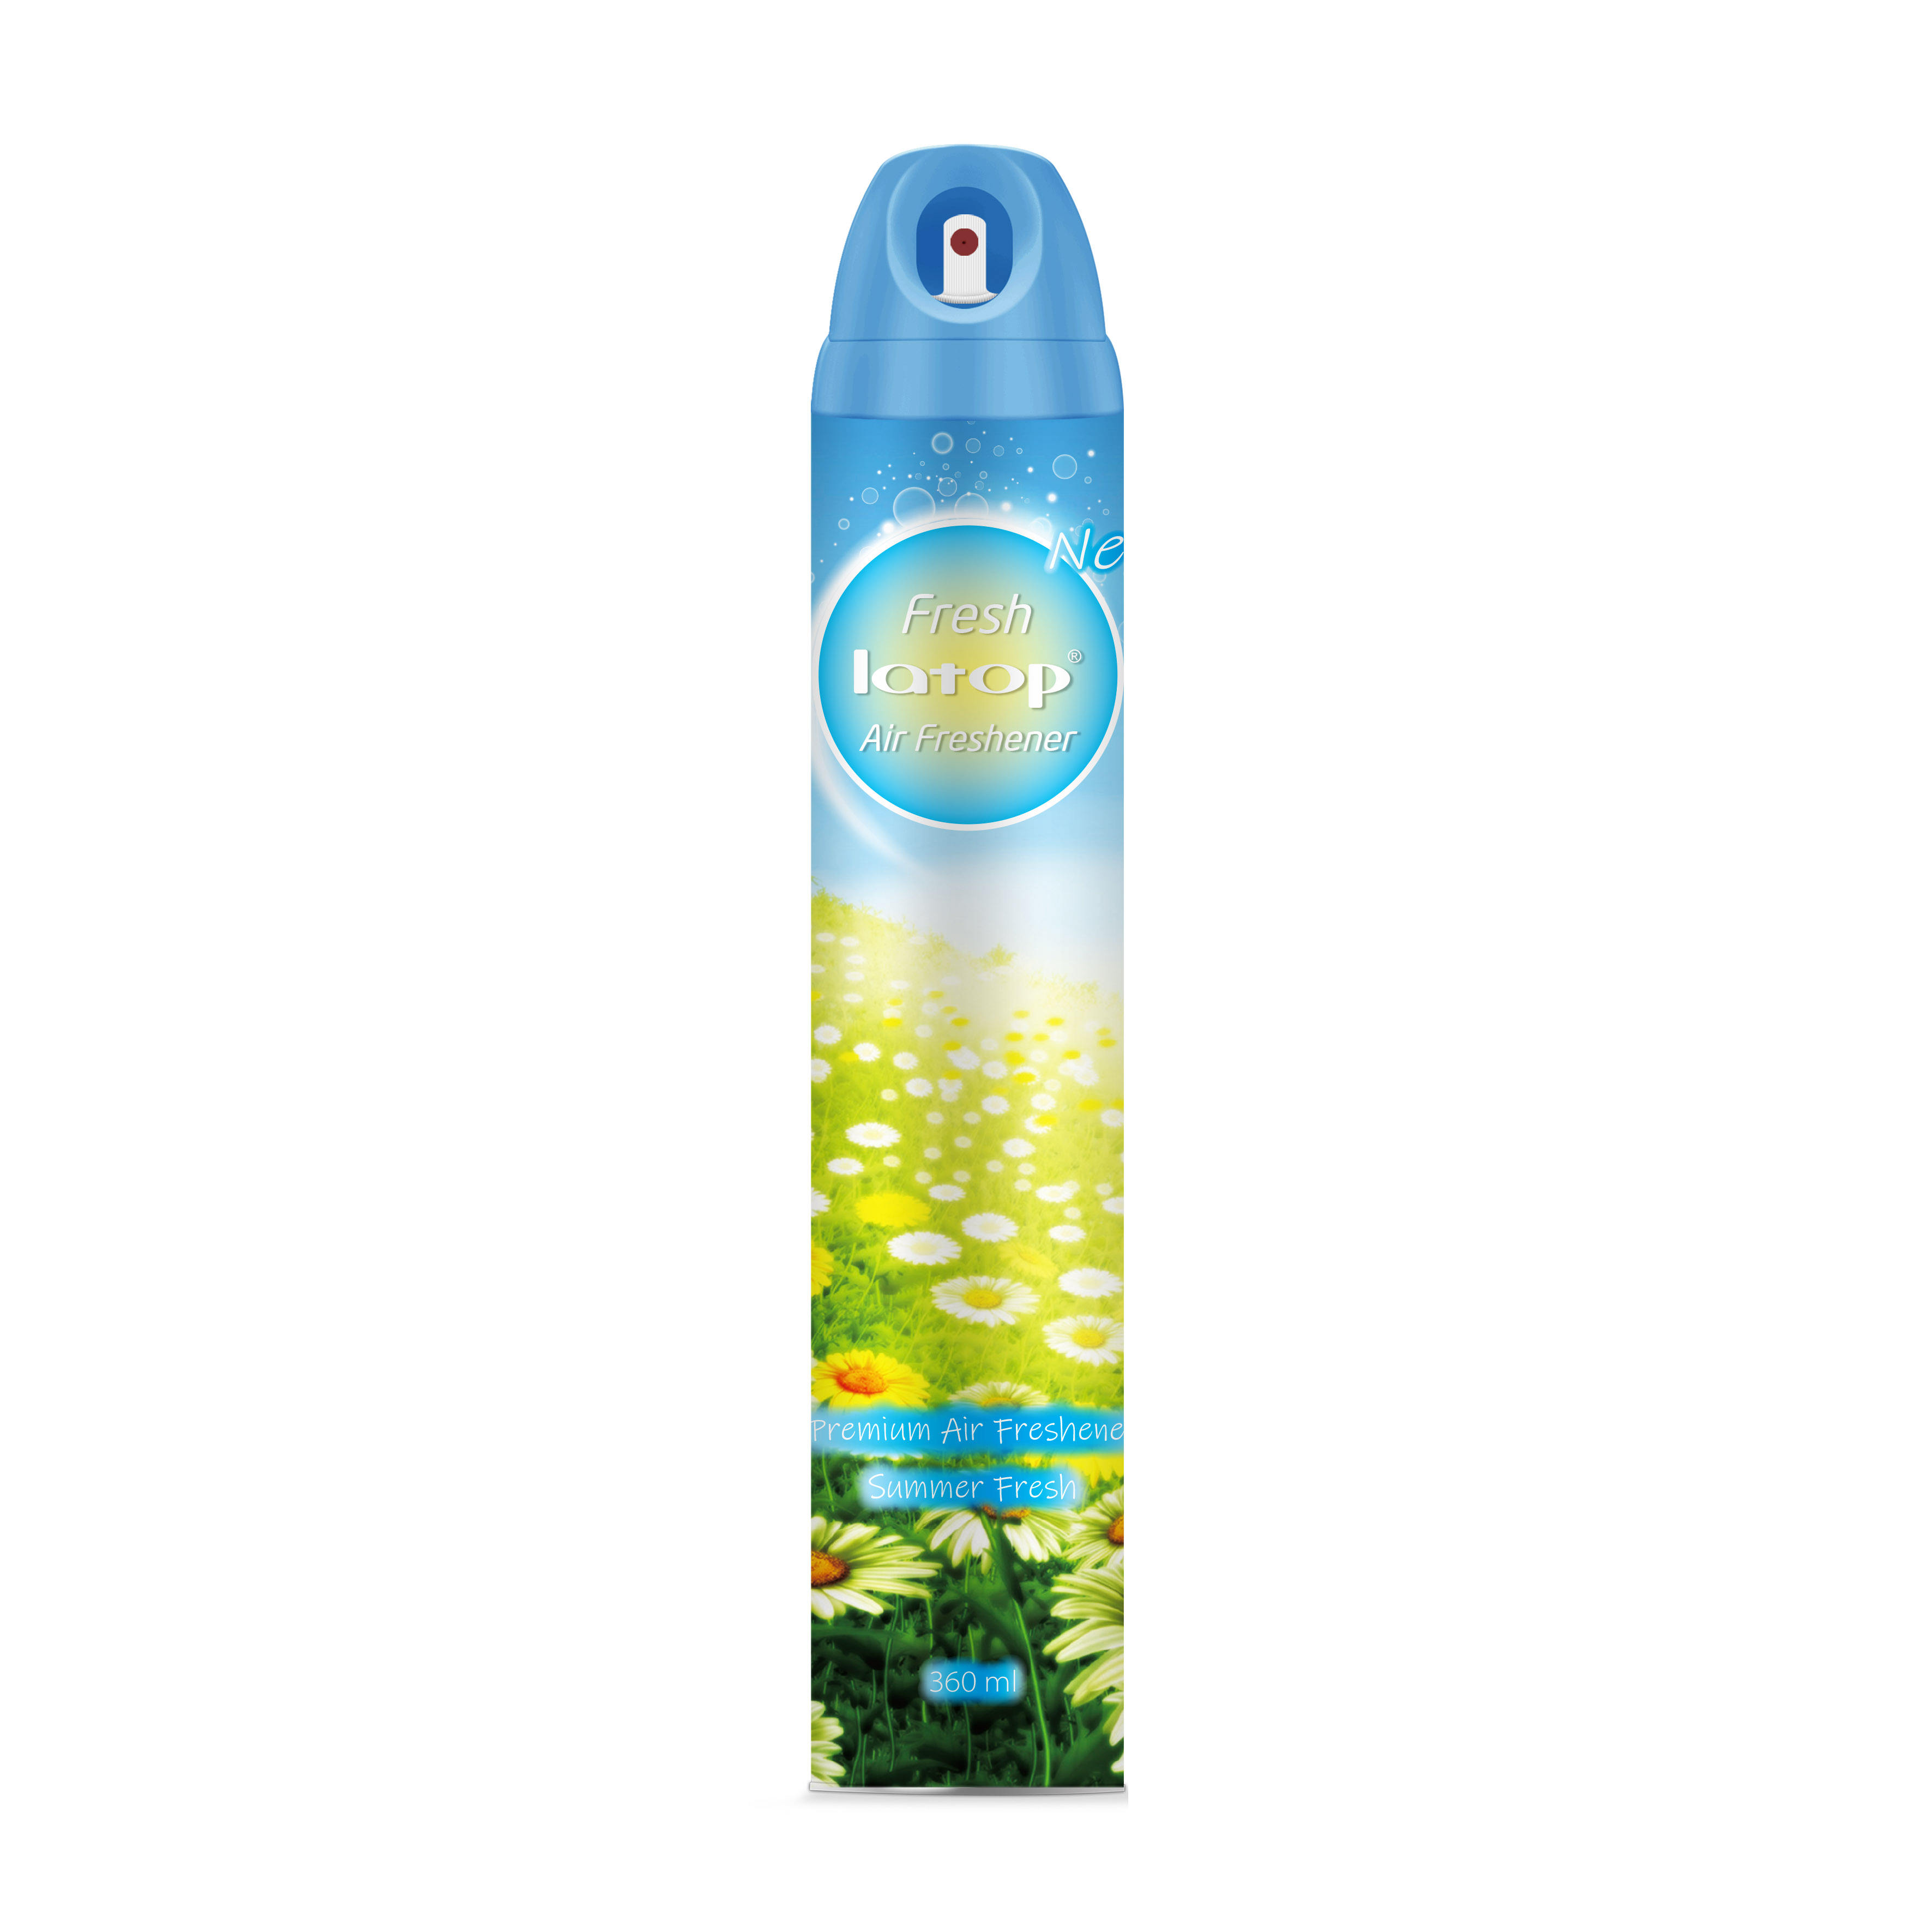 Eco-Friendly Home/car Air Freshener Use and Odor neutralizer Spray Toilet Odor Neutralizing Eliminator Air Freshener Spray